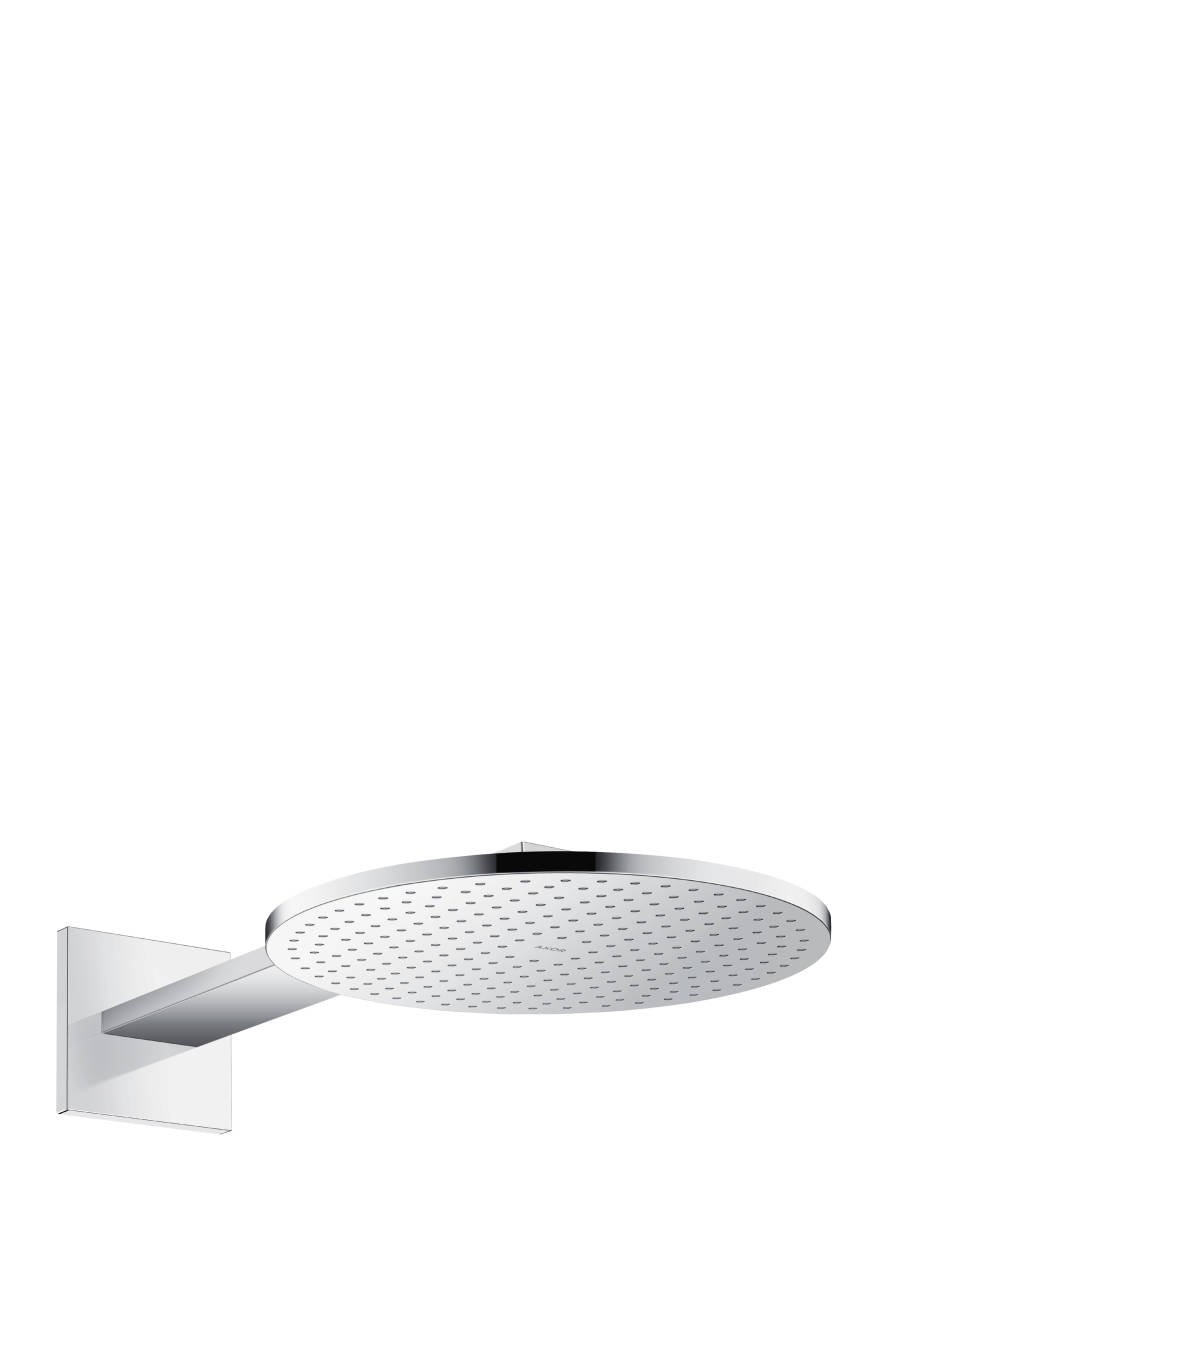 Overhead shower 300 2jet with shower arm, Chrome, 35303000